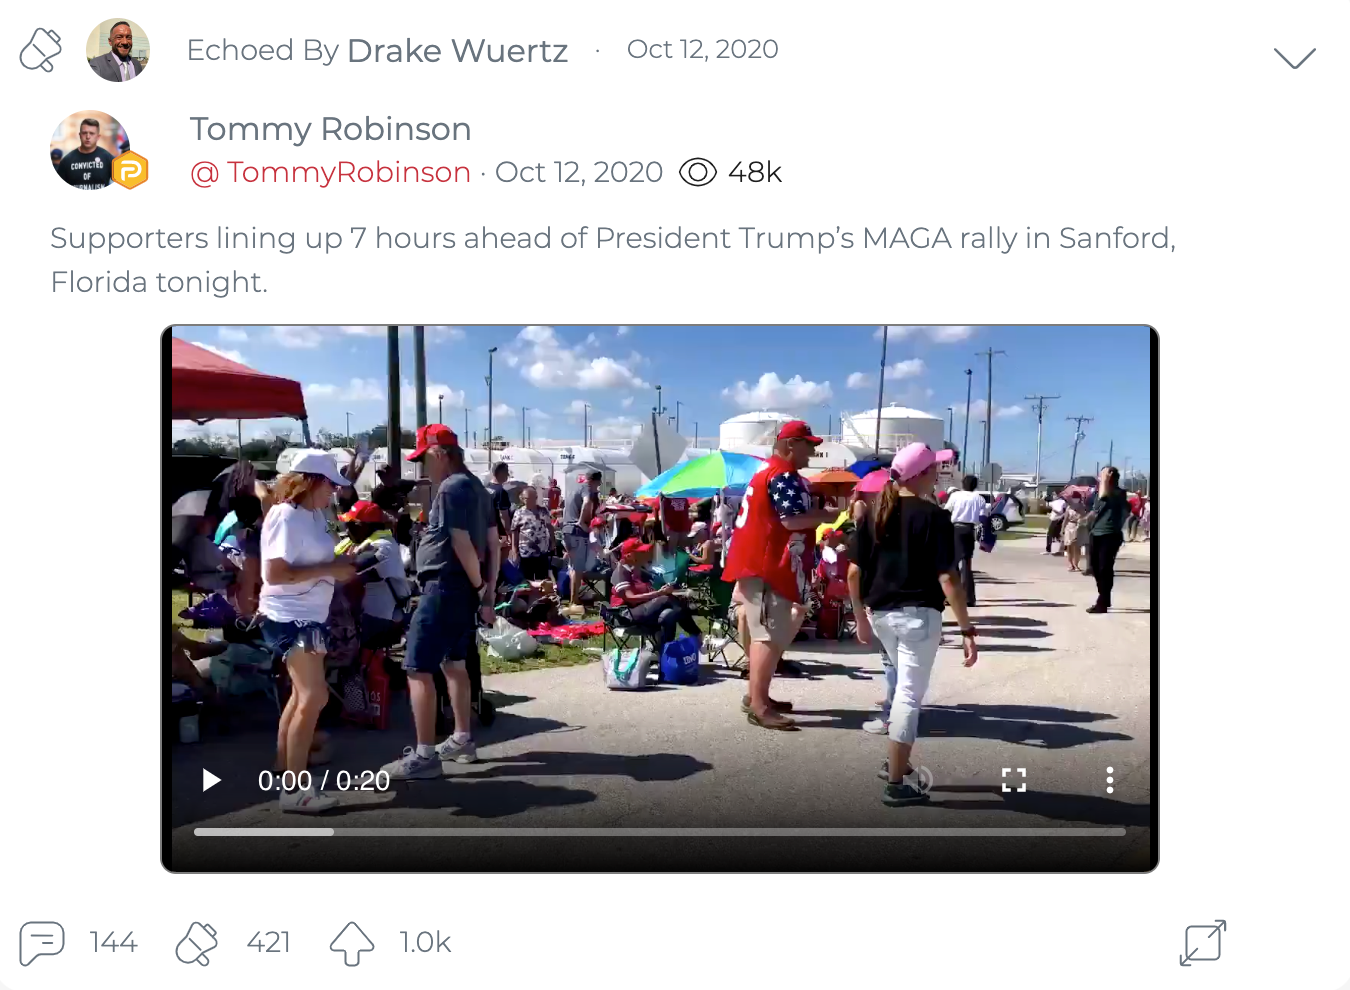 "@DrakeWuertzFLA's second ""echo"" of Tommy Robinson, sharing an October 12, 2020 post about a video of the line to get into a Donald Trump campaign rally in Sanford, Florida. (Image: Parler screenshot)"